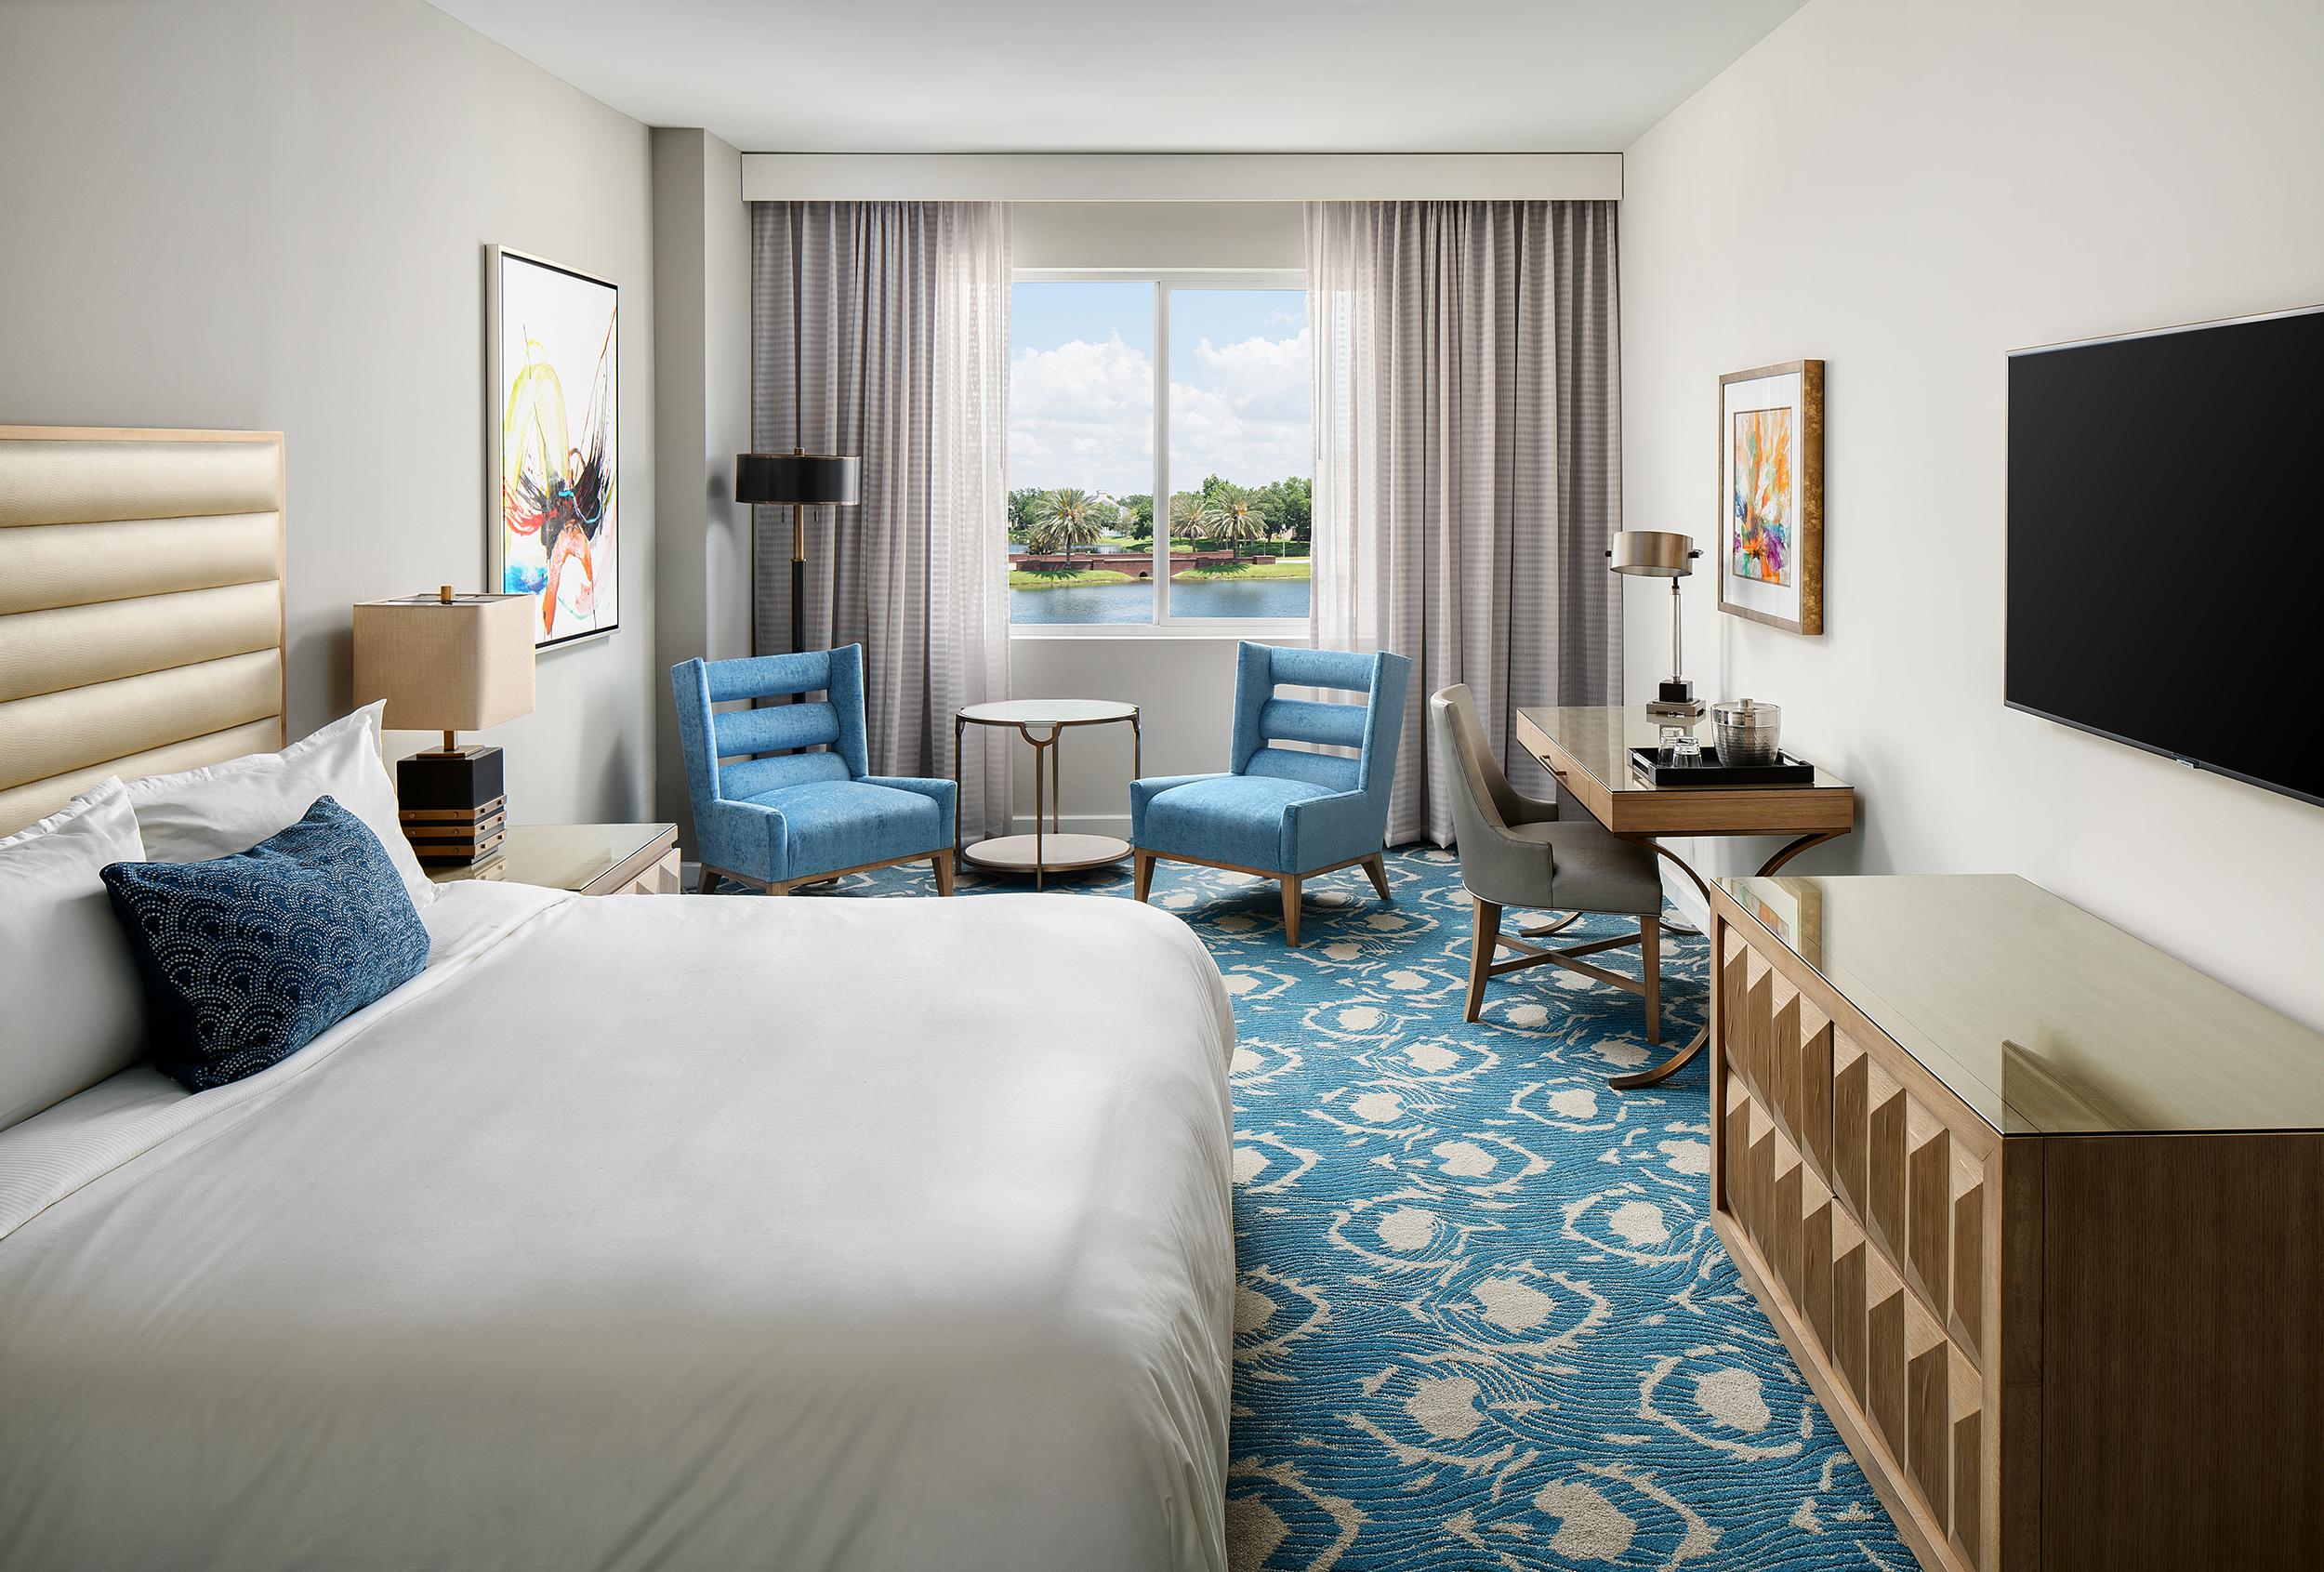 The Karol Hotel to open in Clearwater this fall